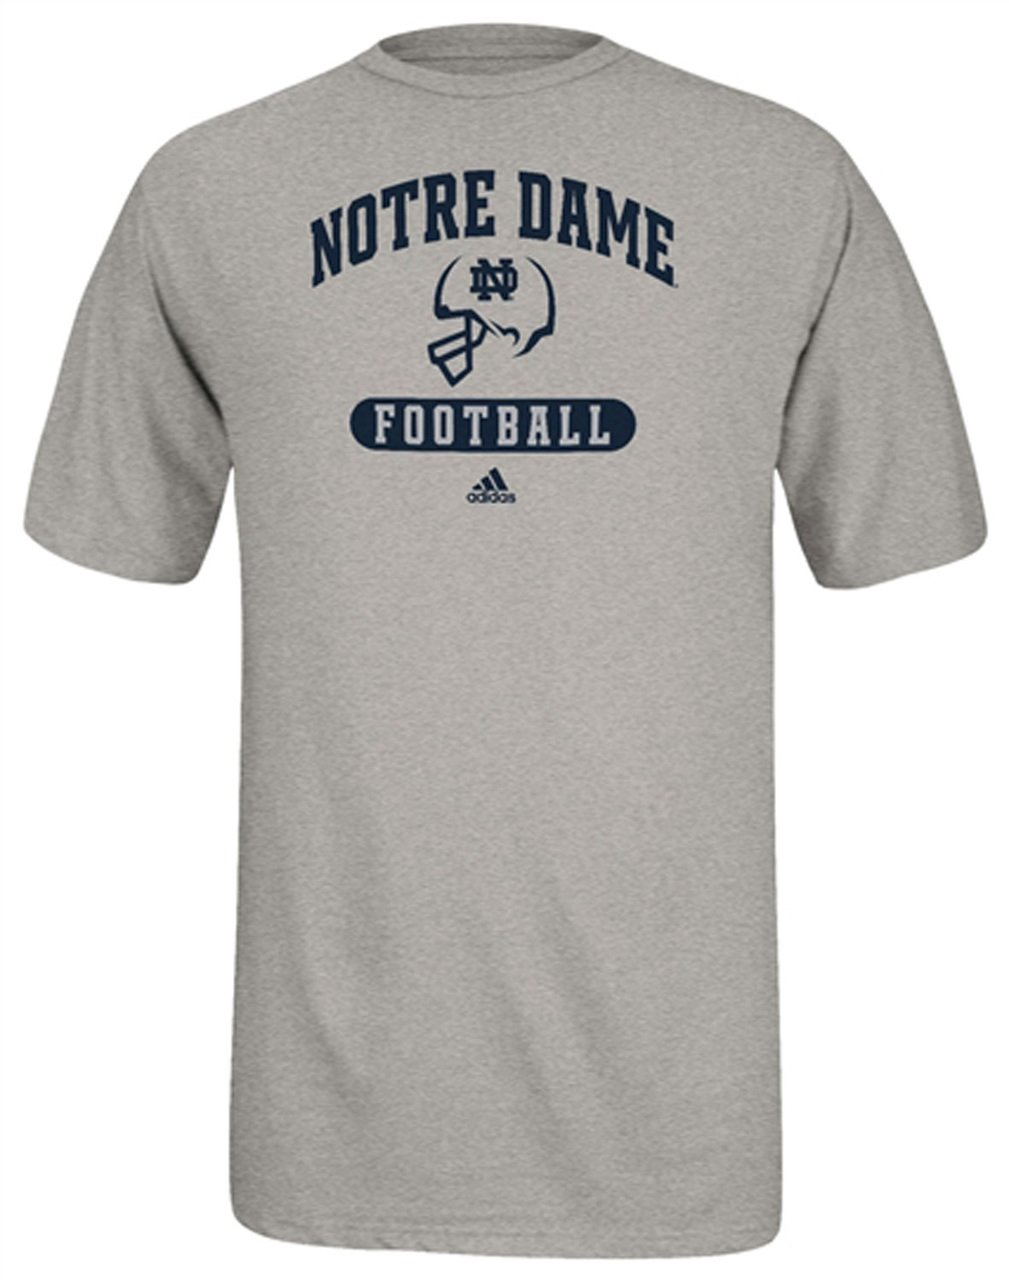 Notre dame fighting irish adidas football sport arch t for Notre dame tee shirts